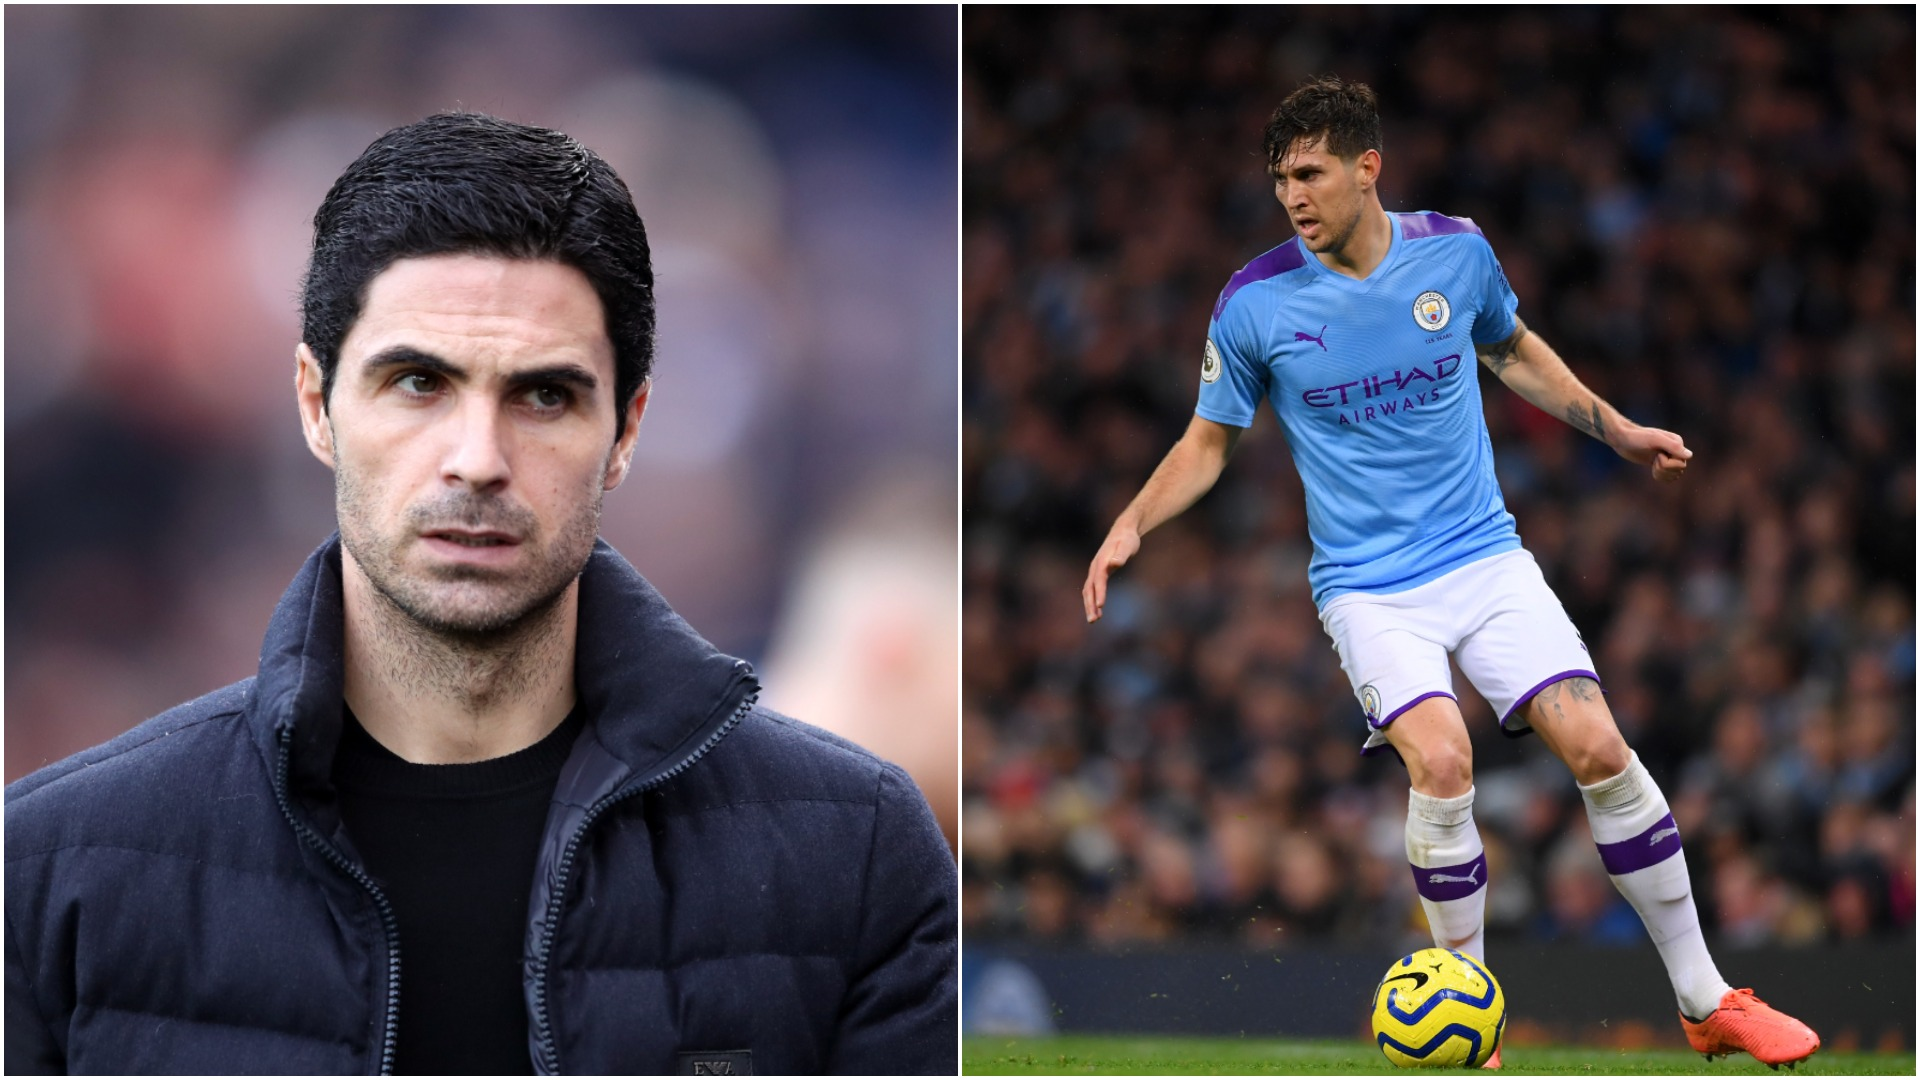 'No truth' in Stones to Arsenal rumours, claims Arteta